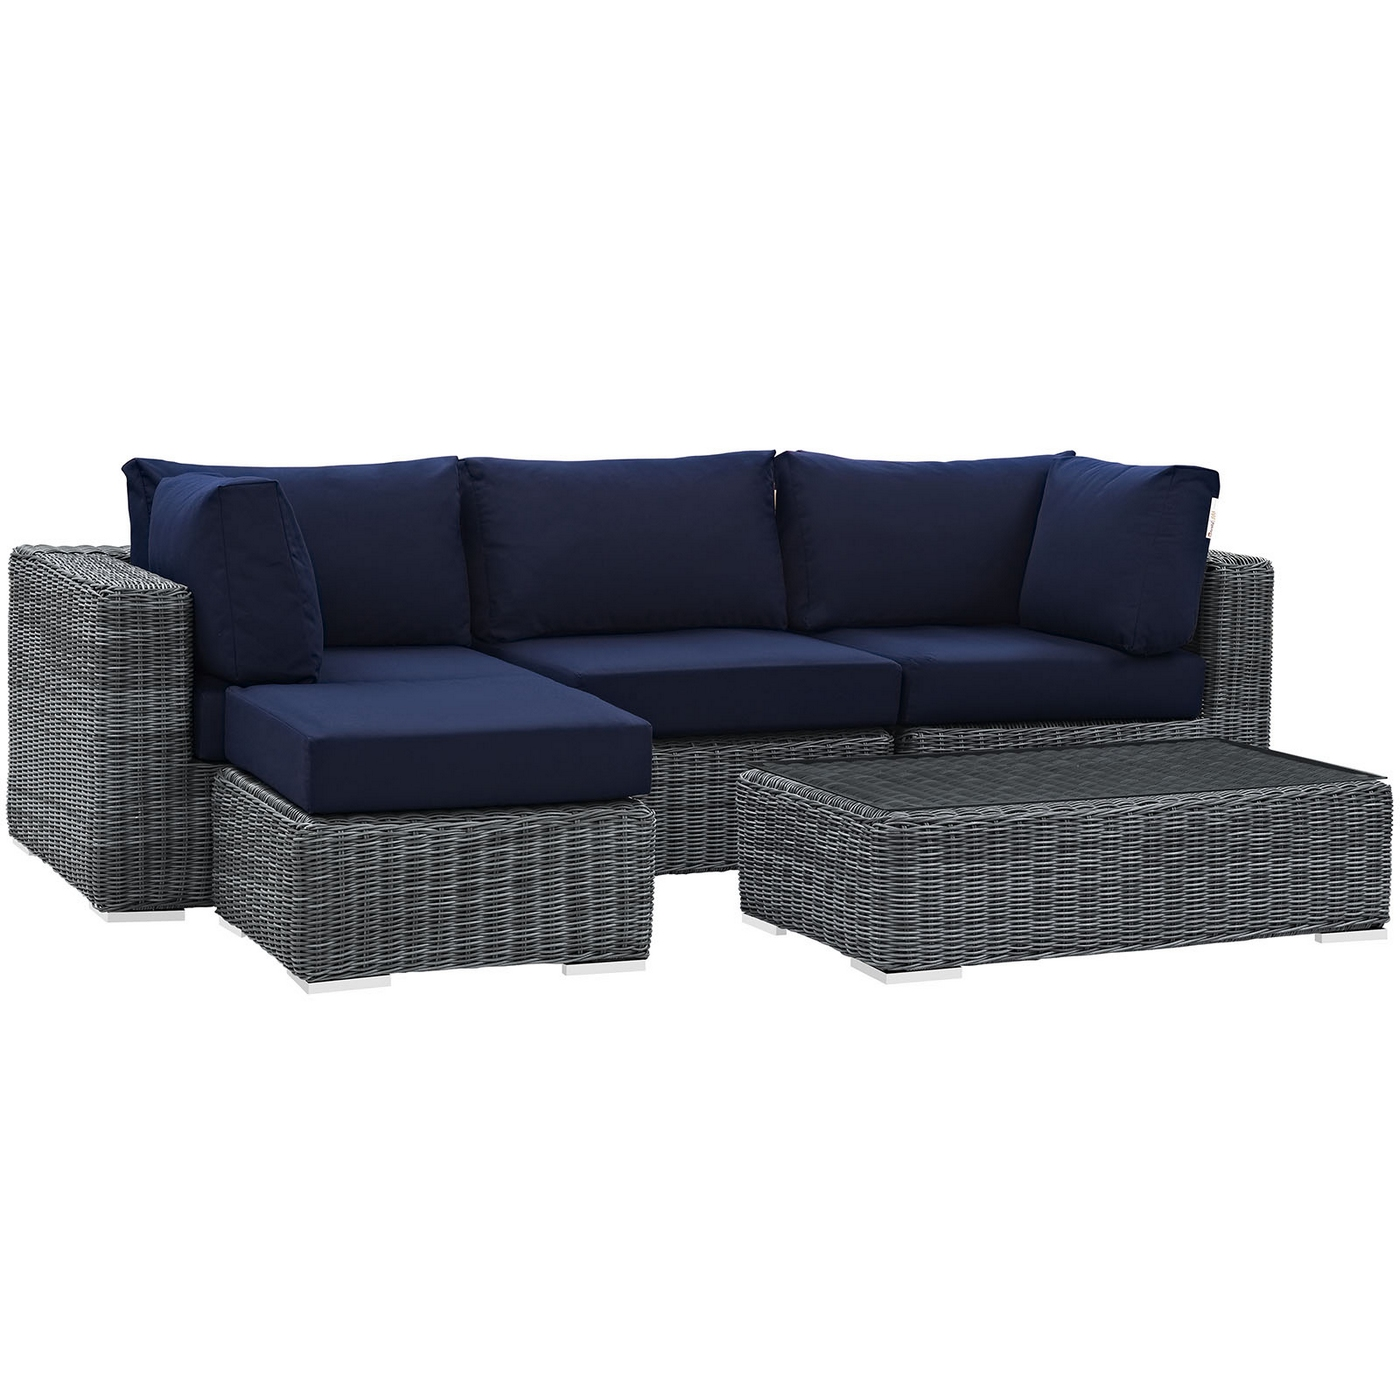 Magnificent Details About Summon Rattan 5 Piece Patio Sunbrella Sectional Sofa Set W Cushions Navy Blue Cjindustries Chair Design For Home Cjindustriesco